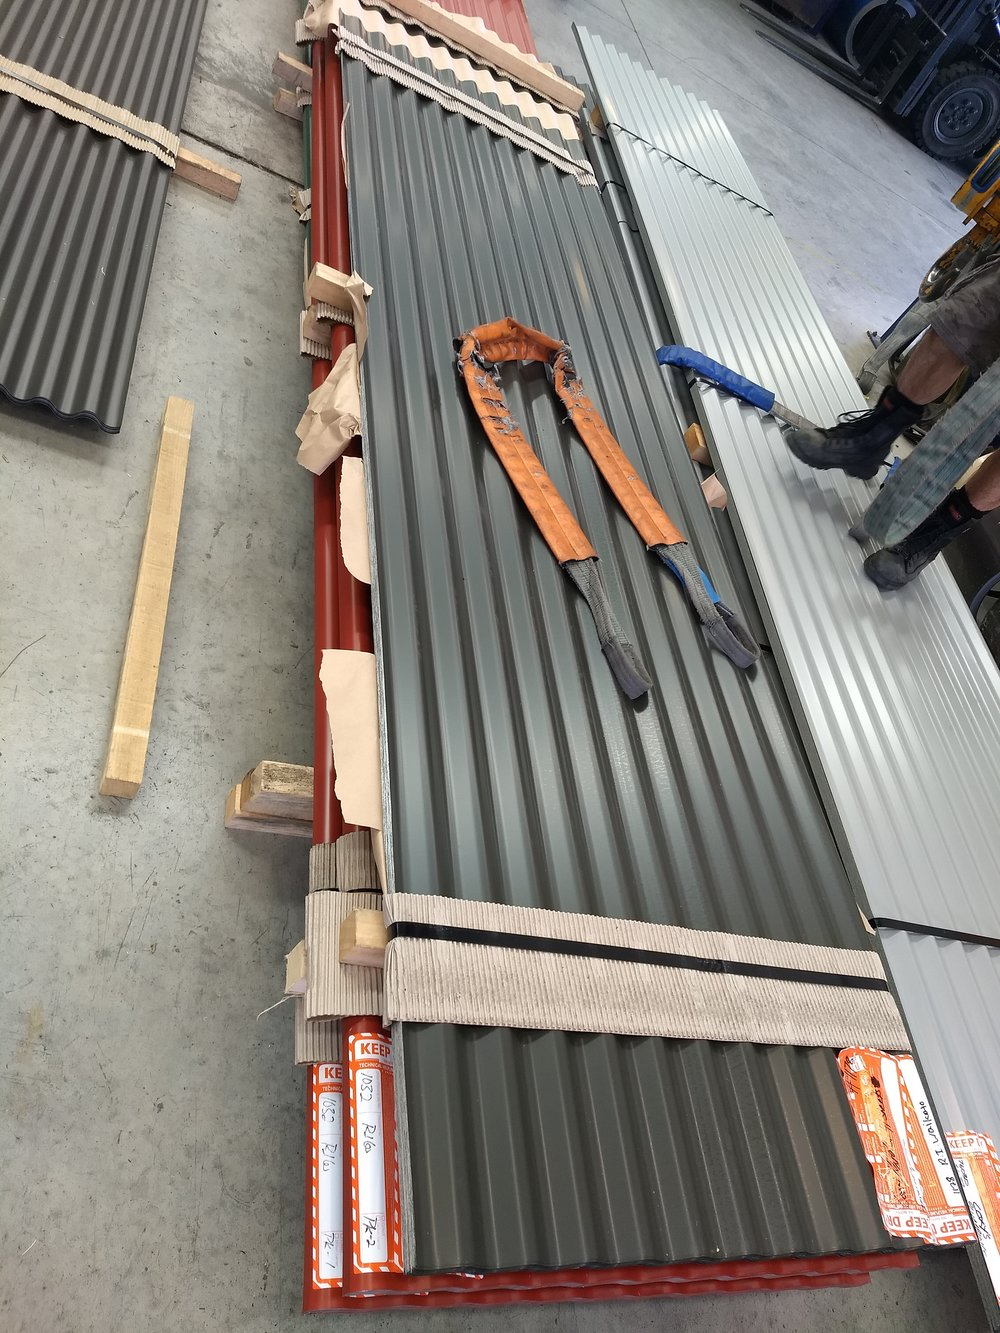 The steel arrives! (Yes that's the lot)